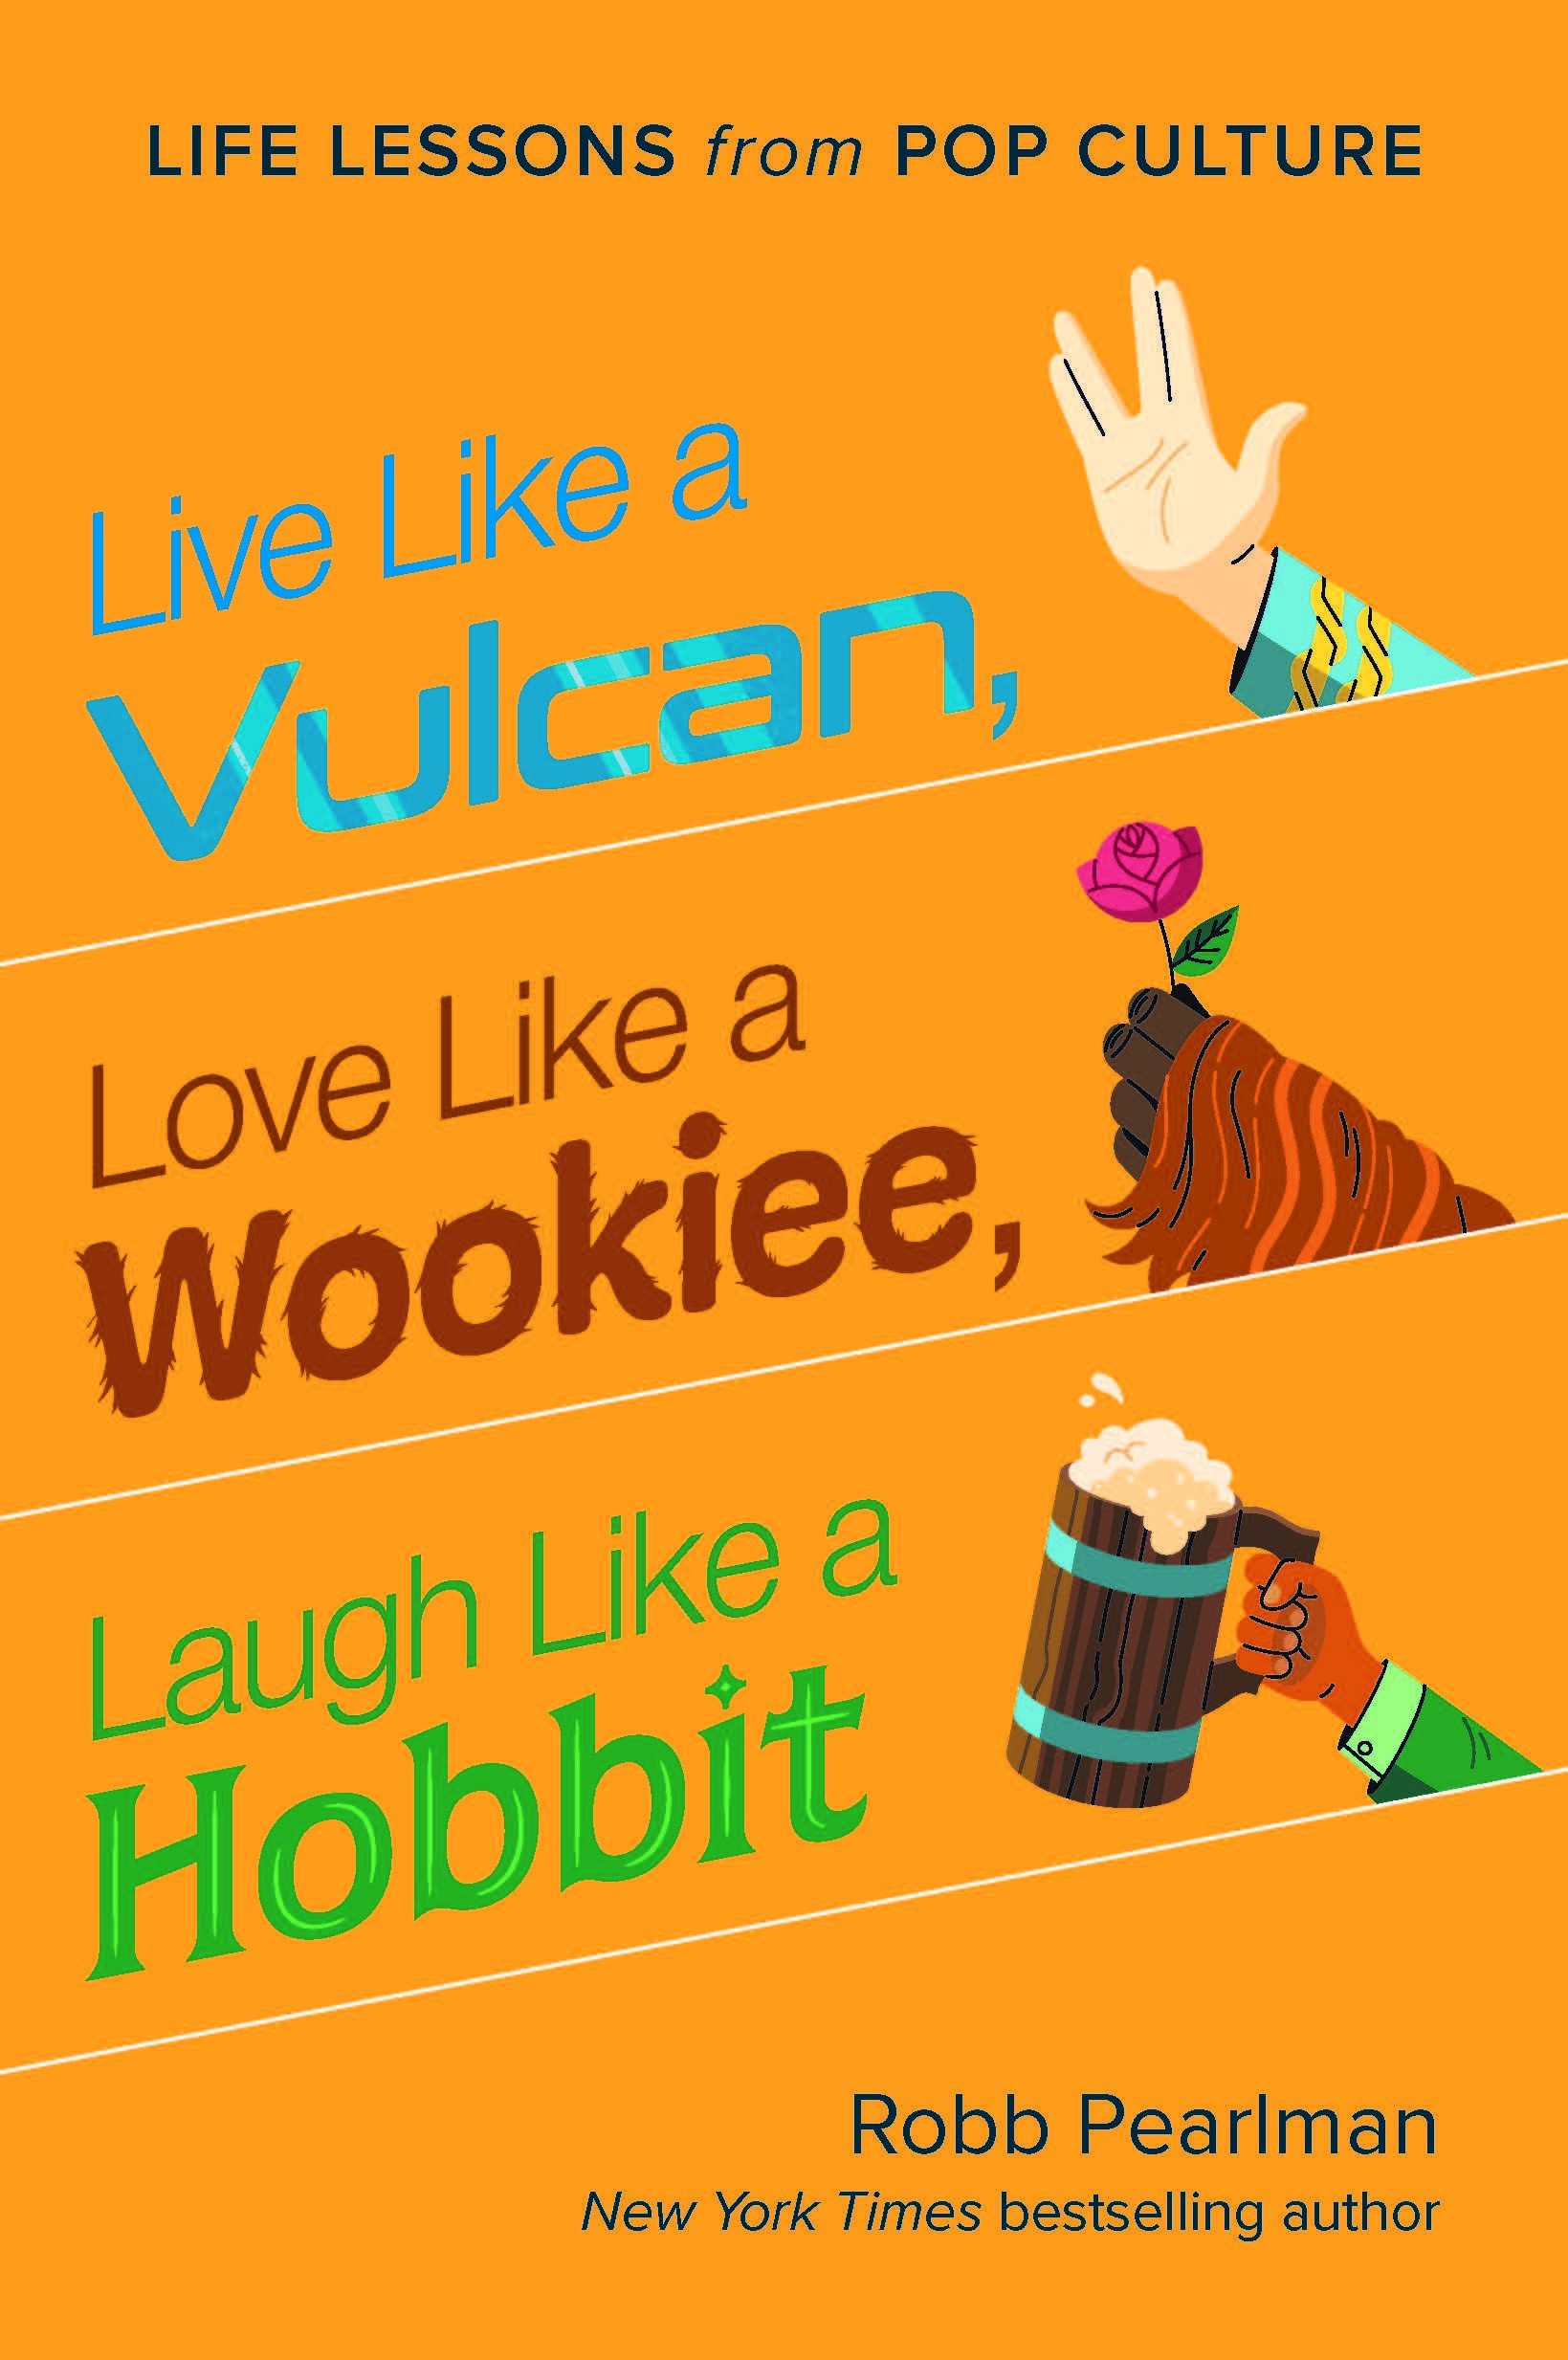 Live Like a Vulcan, Love Like a Wookiee, Laugh Like a Hobbit cover art